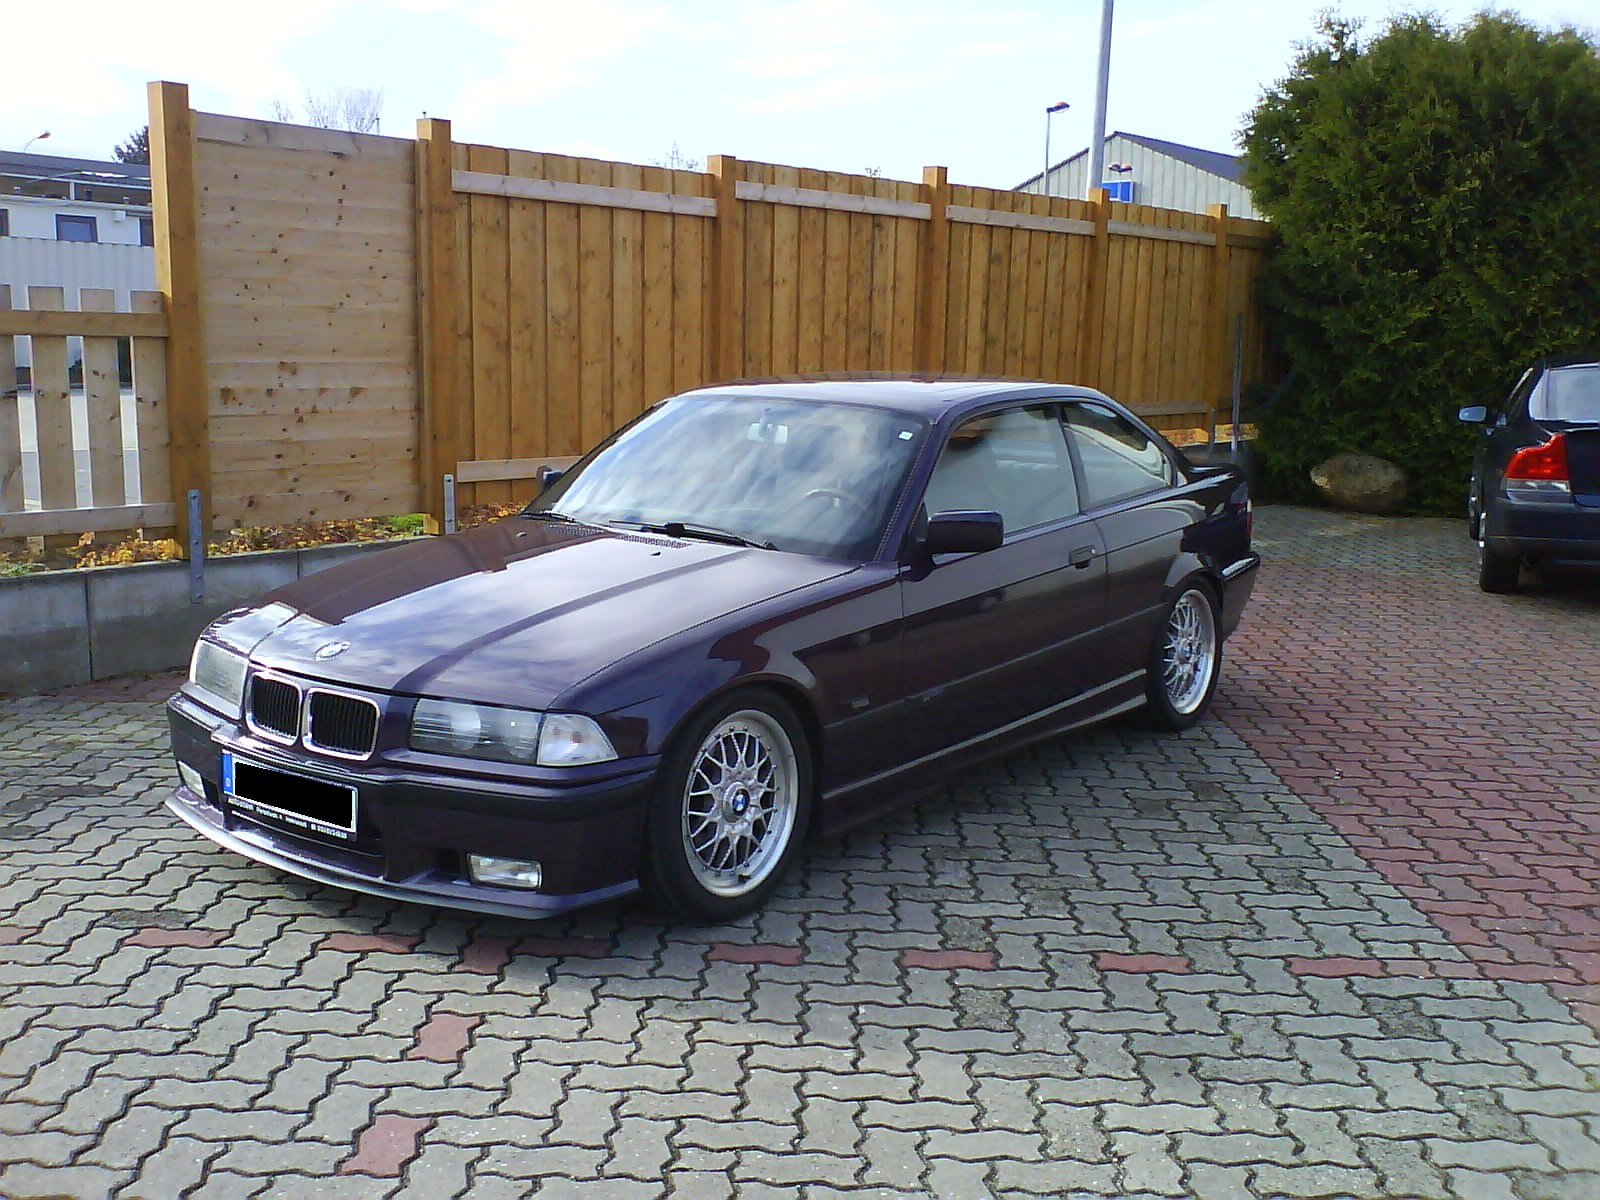 1991 bmw 318is 16v coup e36 related infomation. Black Bedroom Furniture Sets. Home Design Ideas